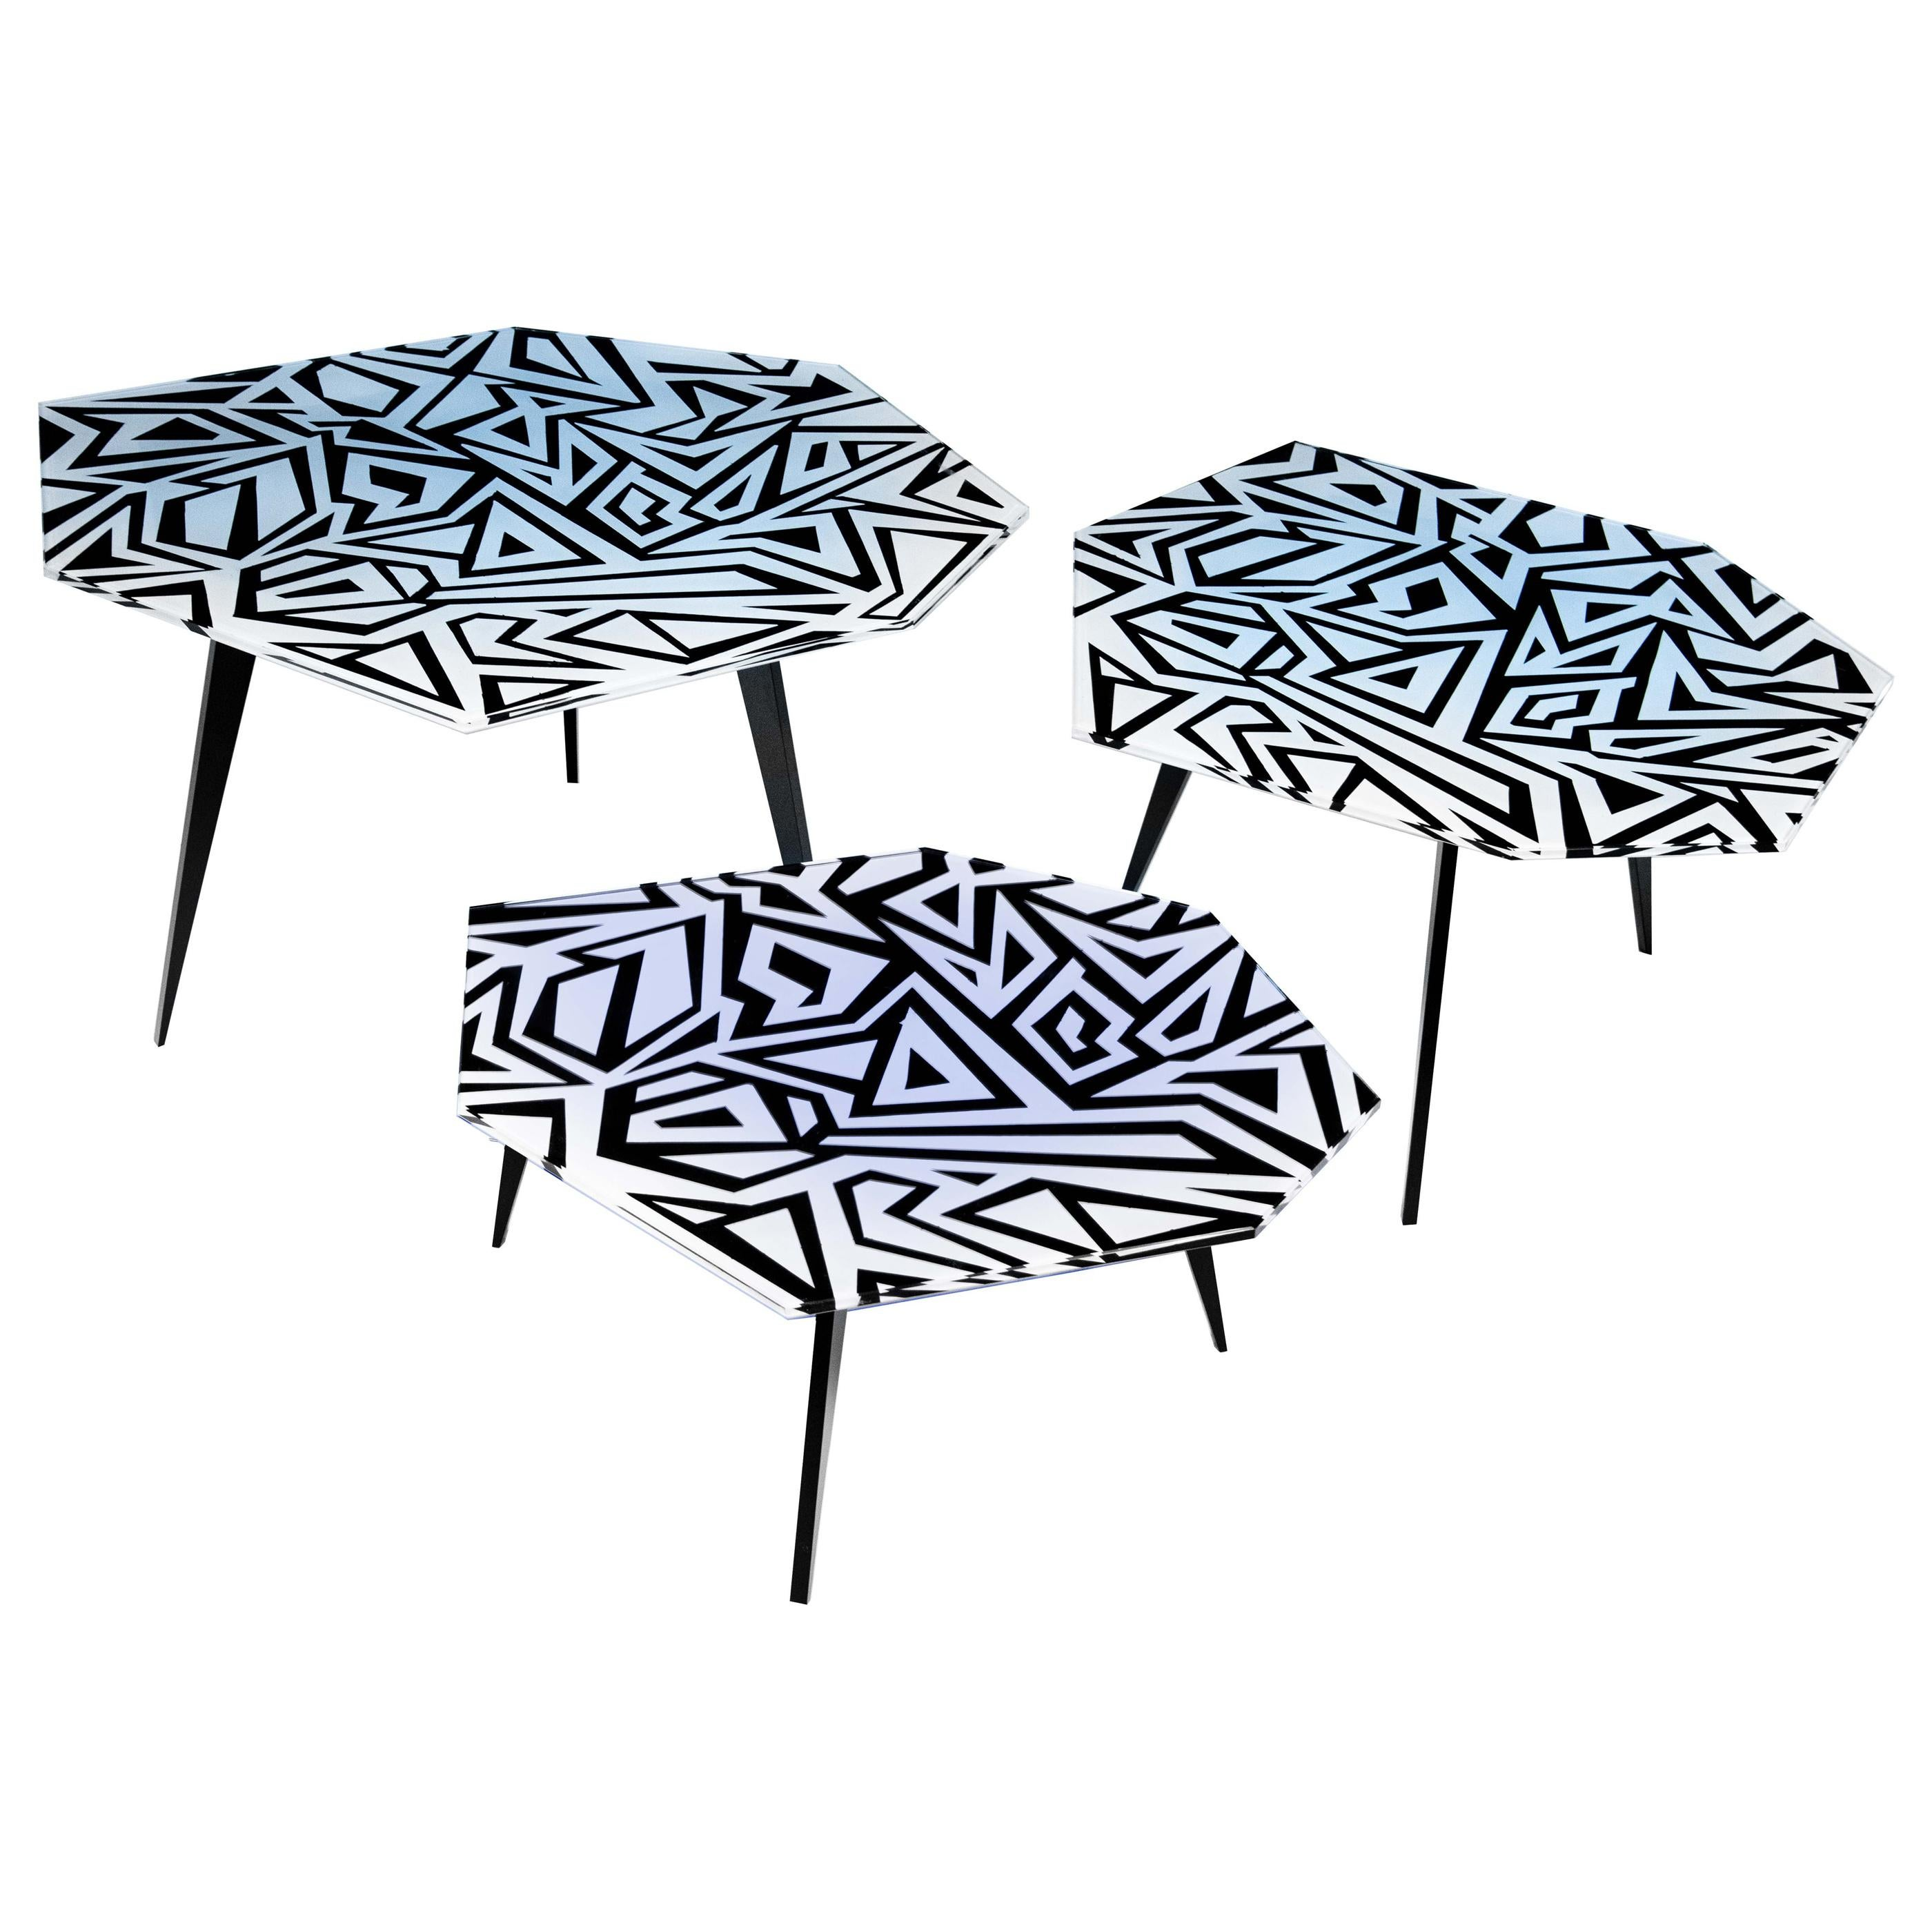 Contemporary by Ghirò Studio Graffito Set of Three Coffee Tables Black and White